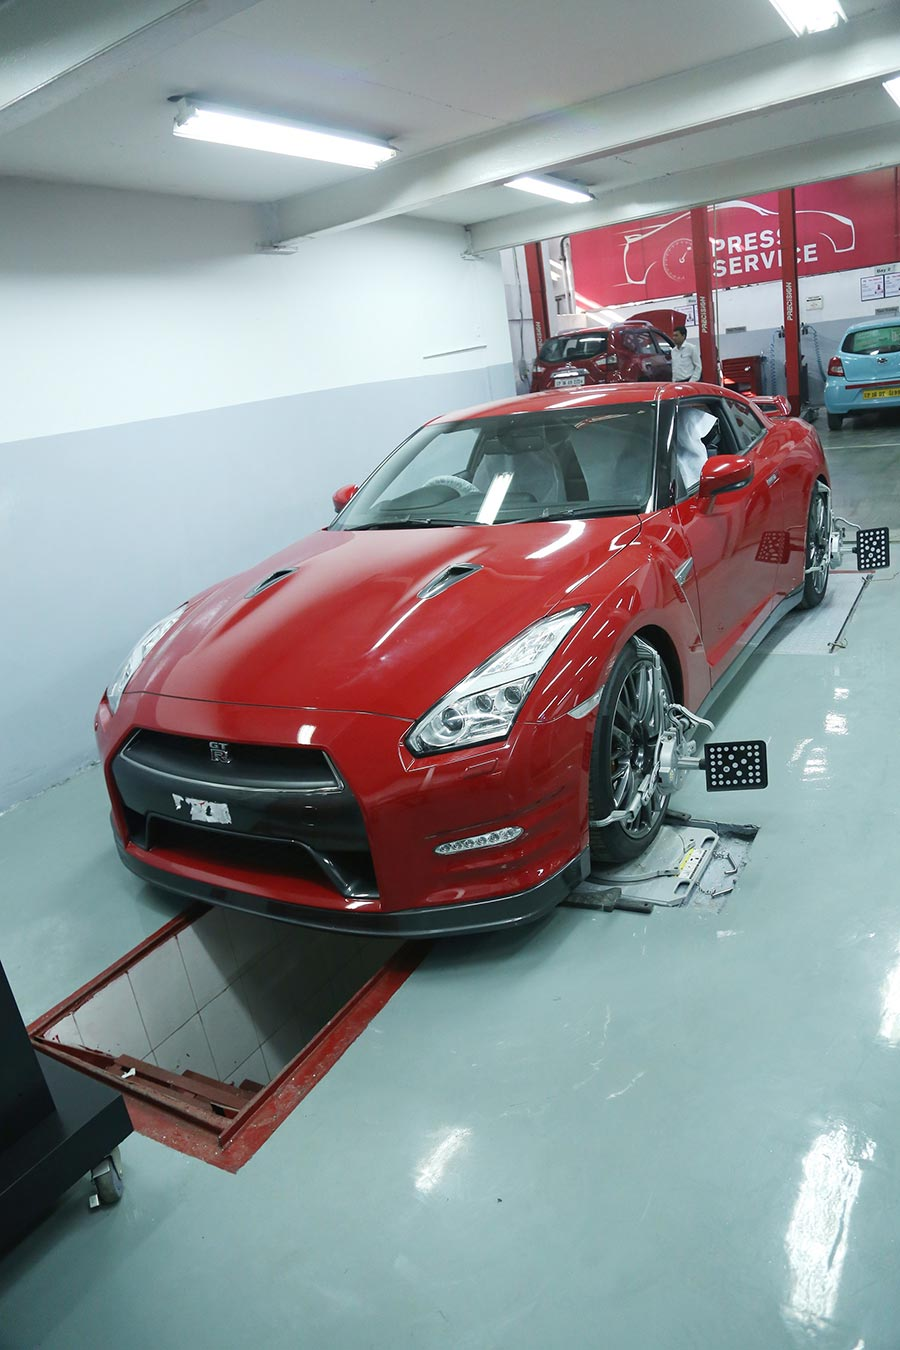 Nissan GT-R Alignment Bay